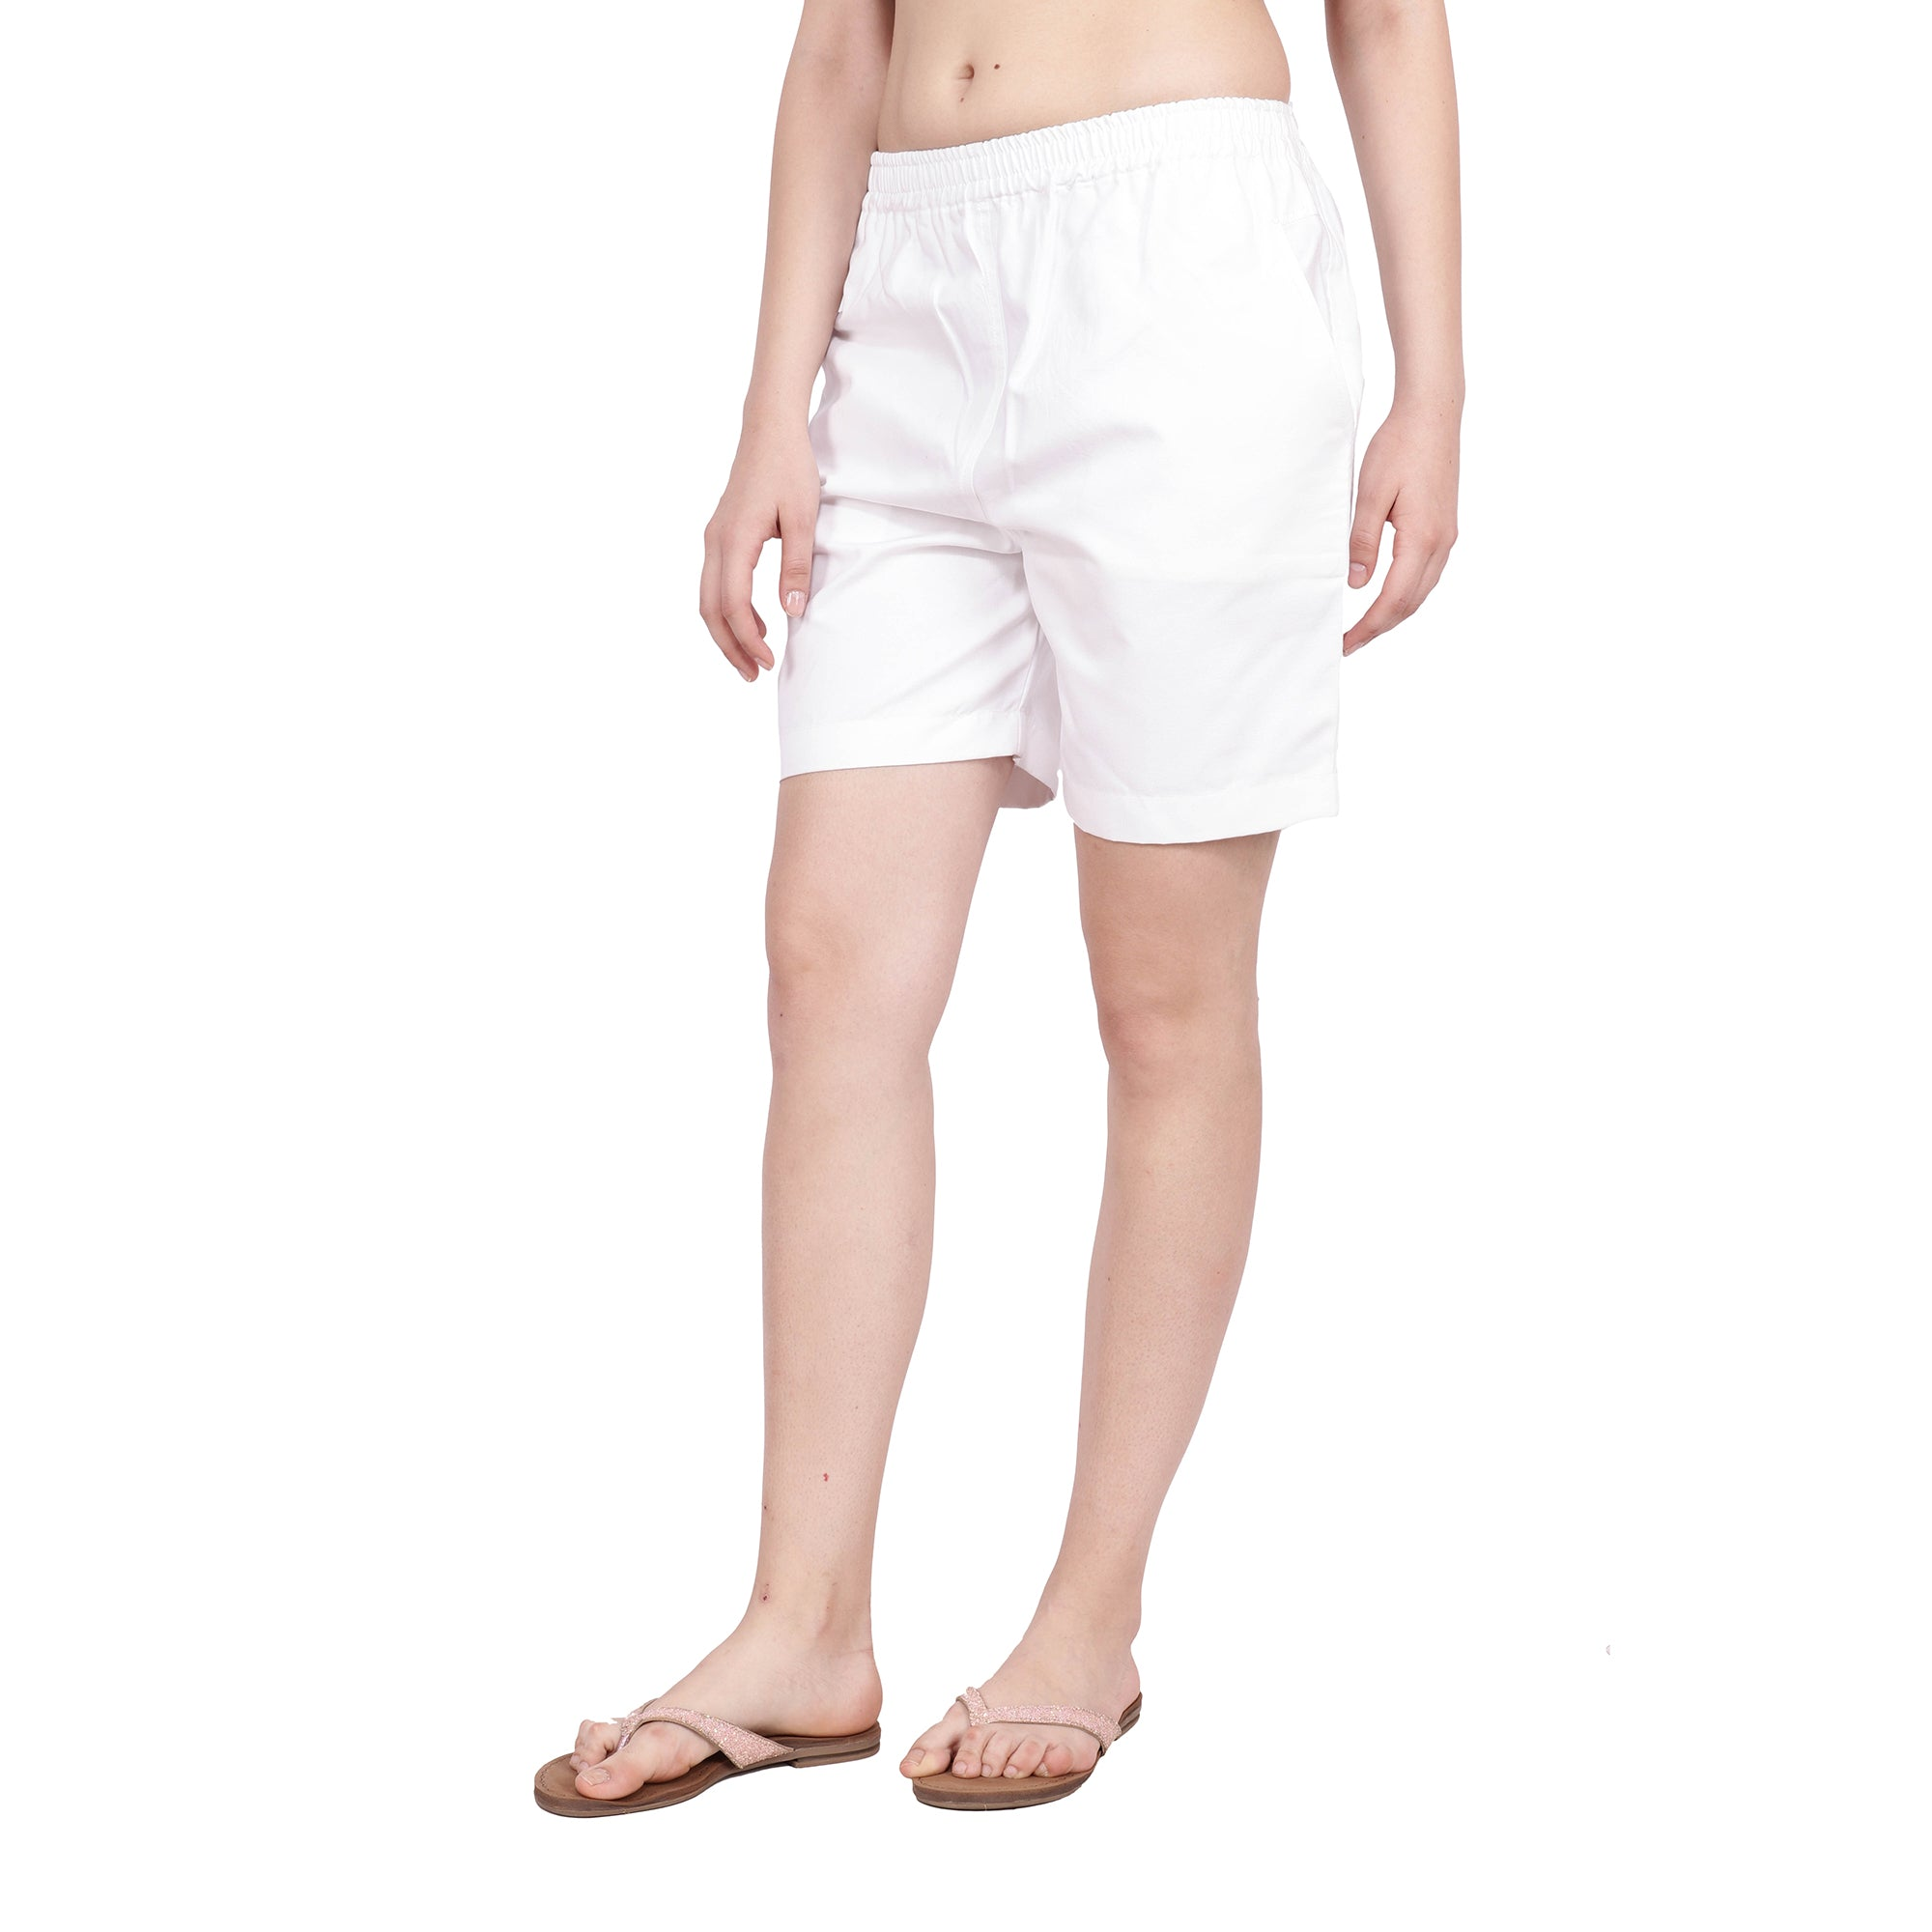 all size, all sizes shorts, apella shorts, best online store, COTTON, cotton shorts, LYCRA, mens shorts, plus size shorts, pluz size, reasonable price, reasonable price shorts online, shorts,